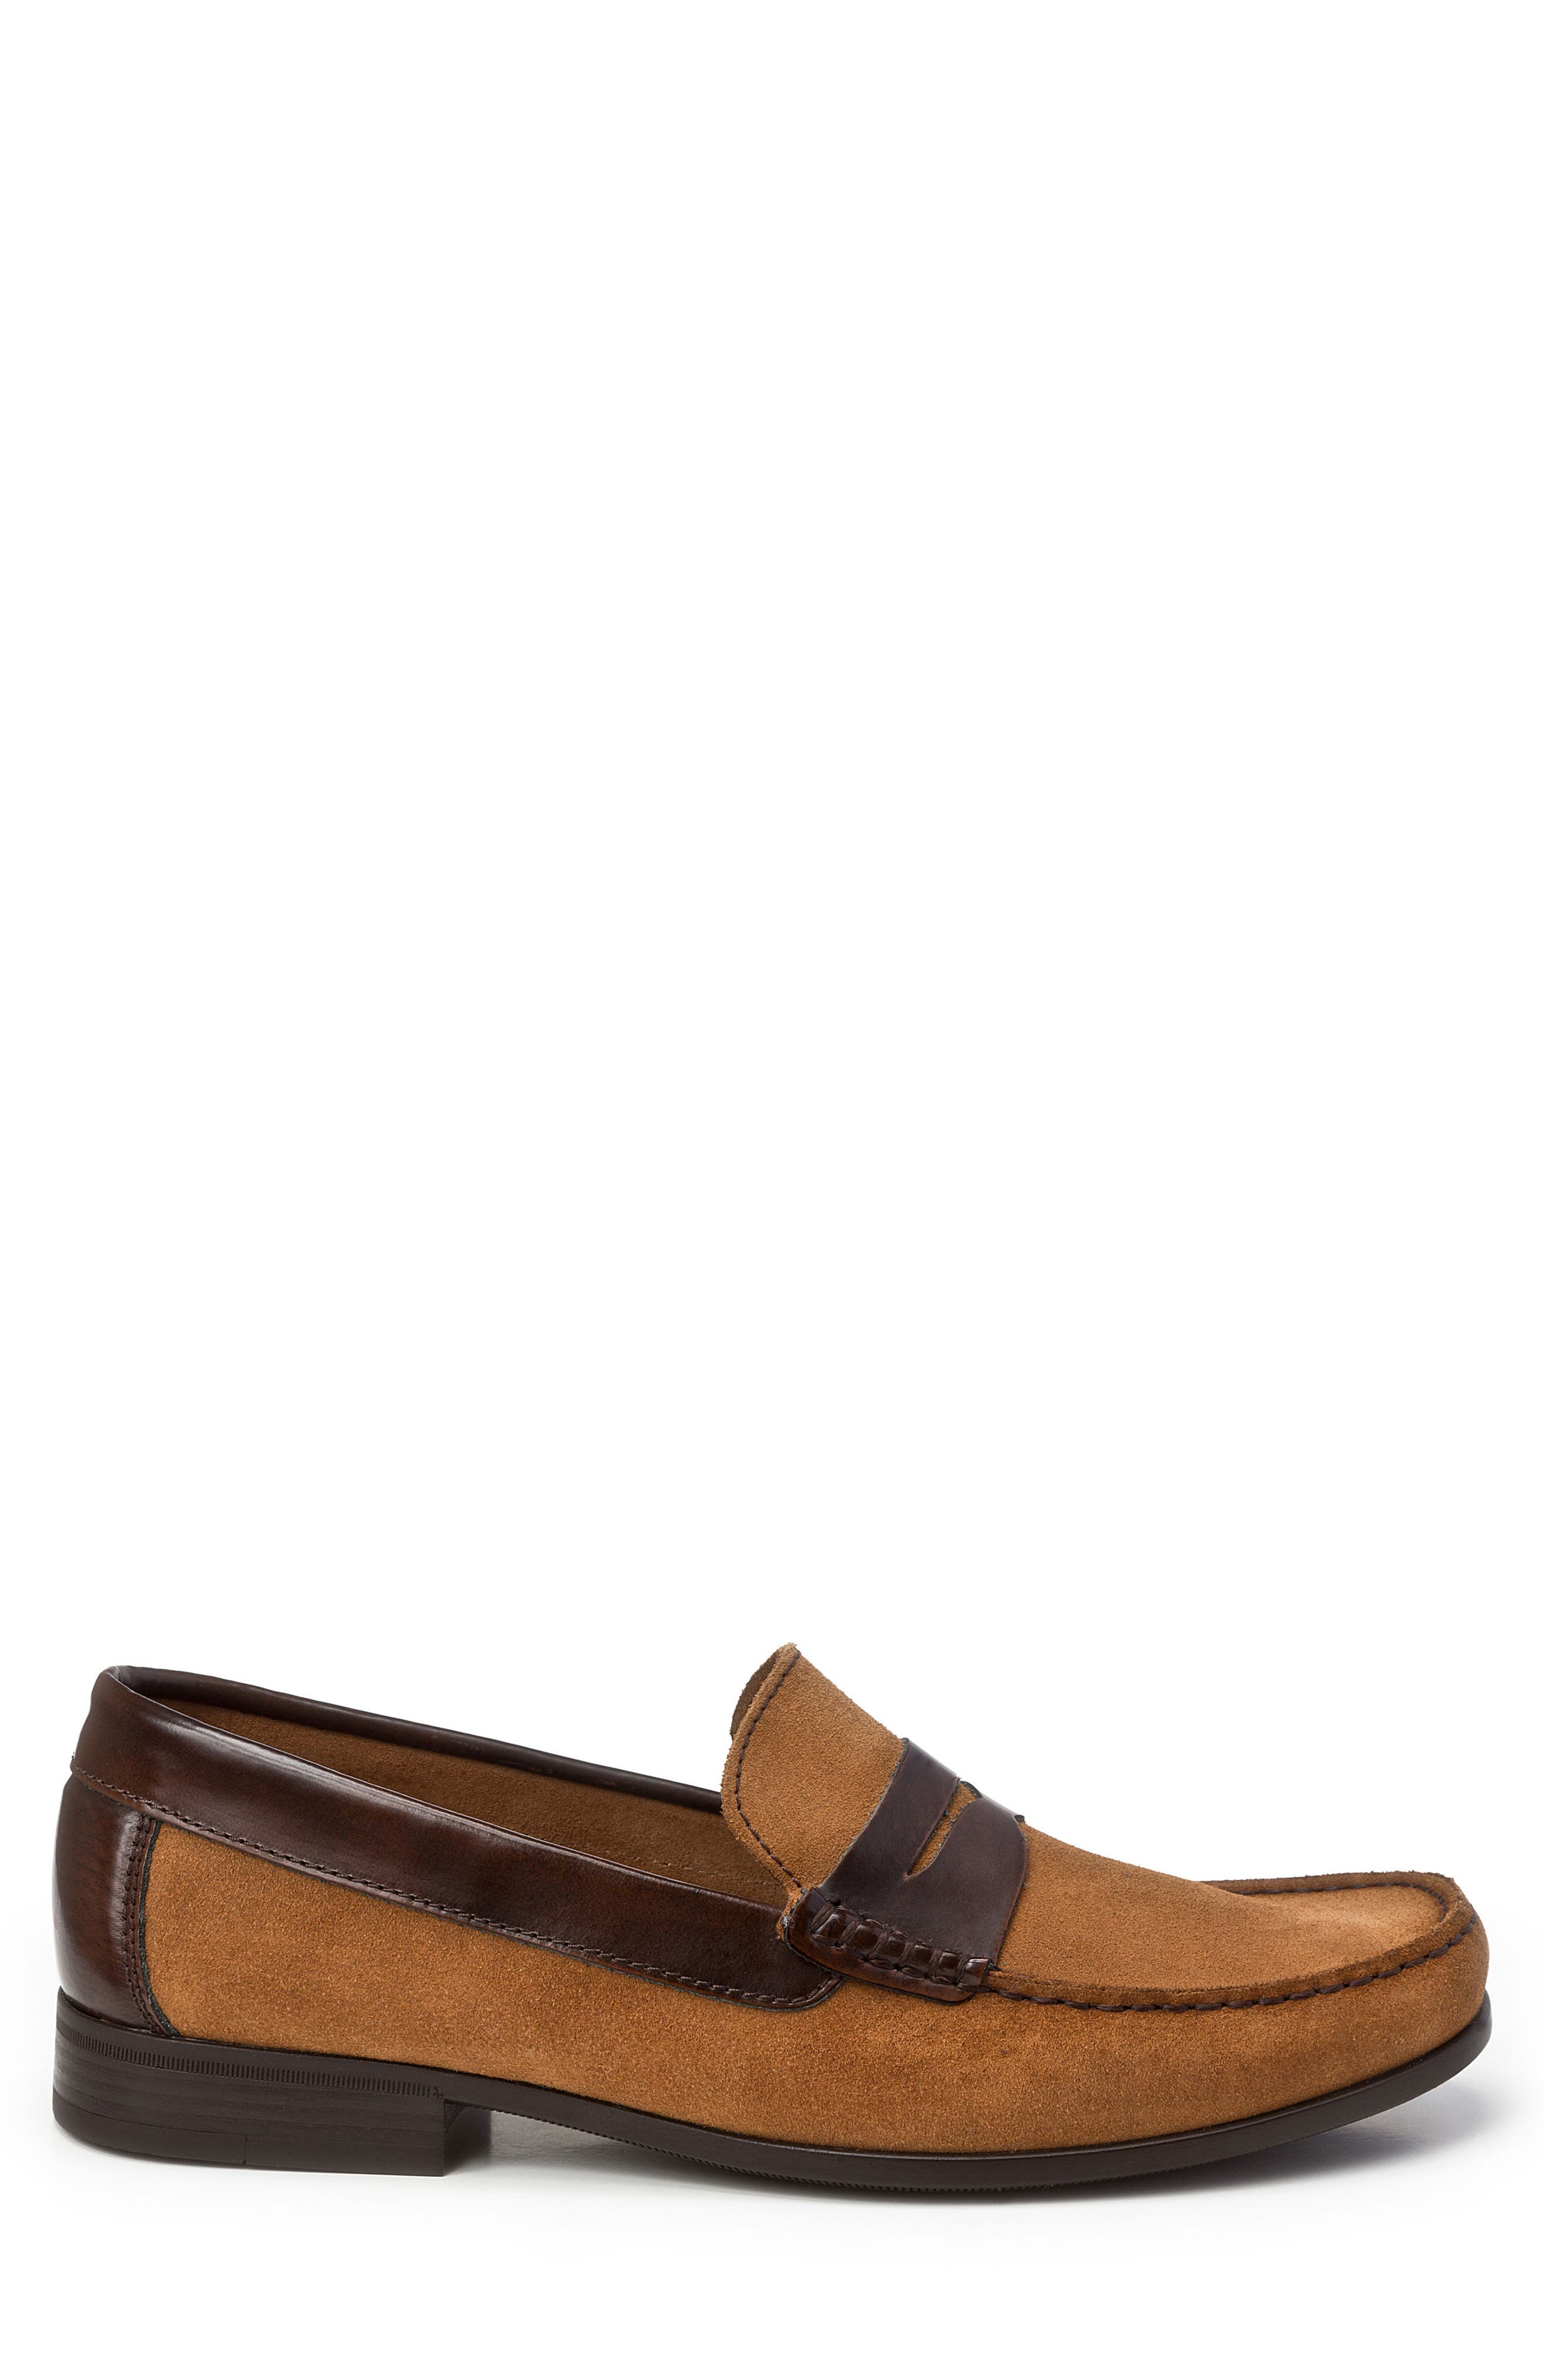 Lucho Penny Loafer,                             Alternate thumbnail 3, color,                             230